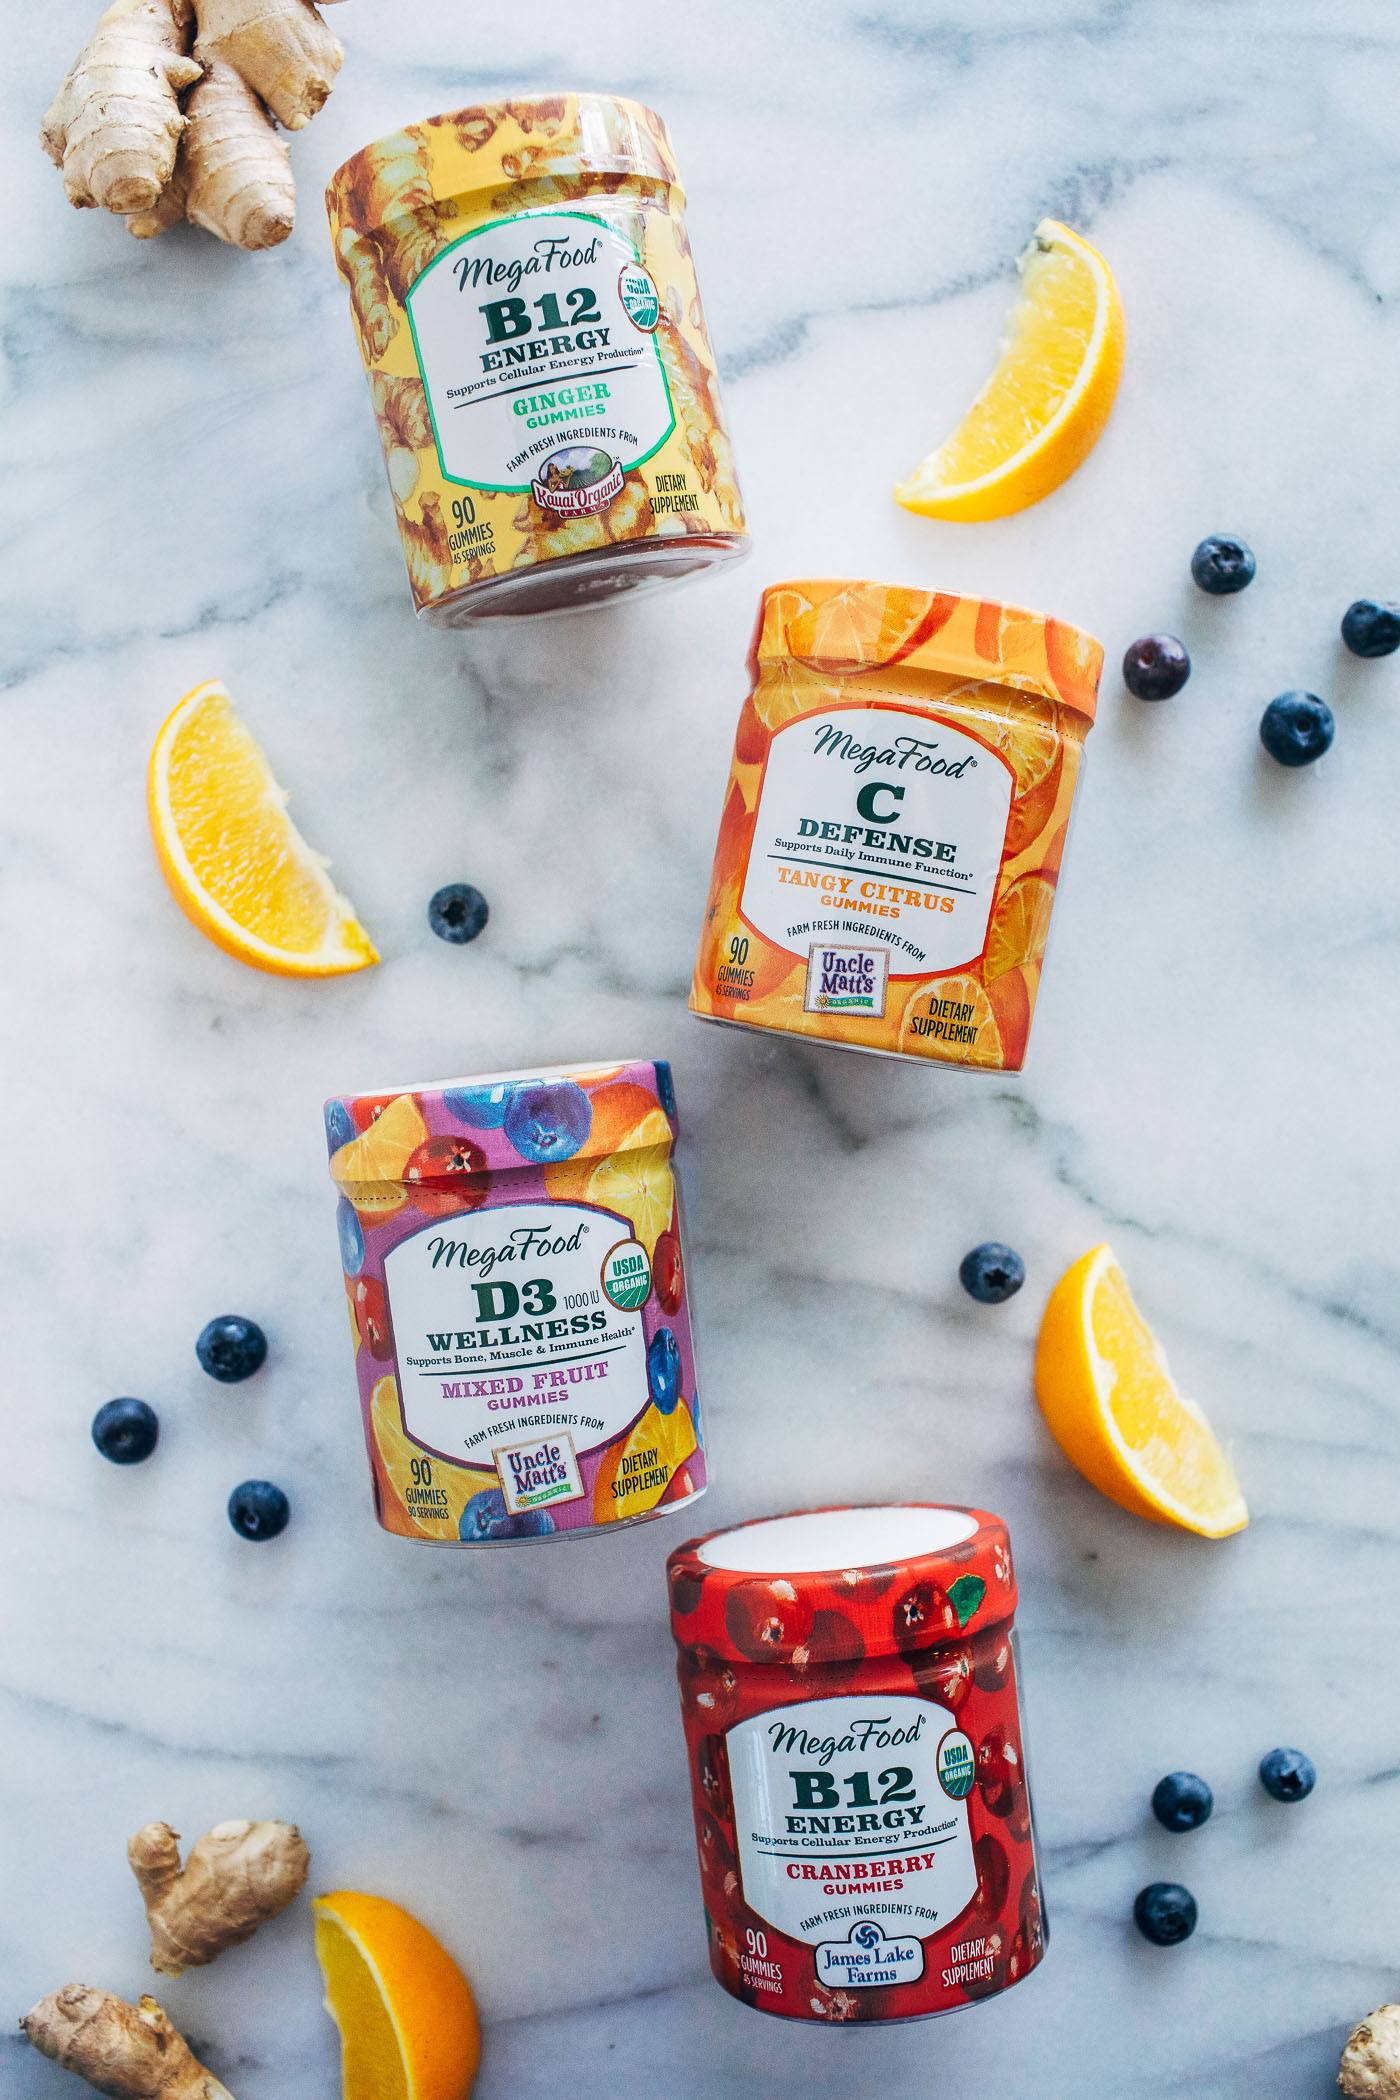 Gummy vitamins without the high sugar content | Well+Good